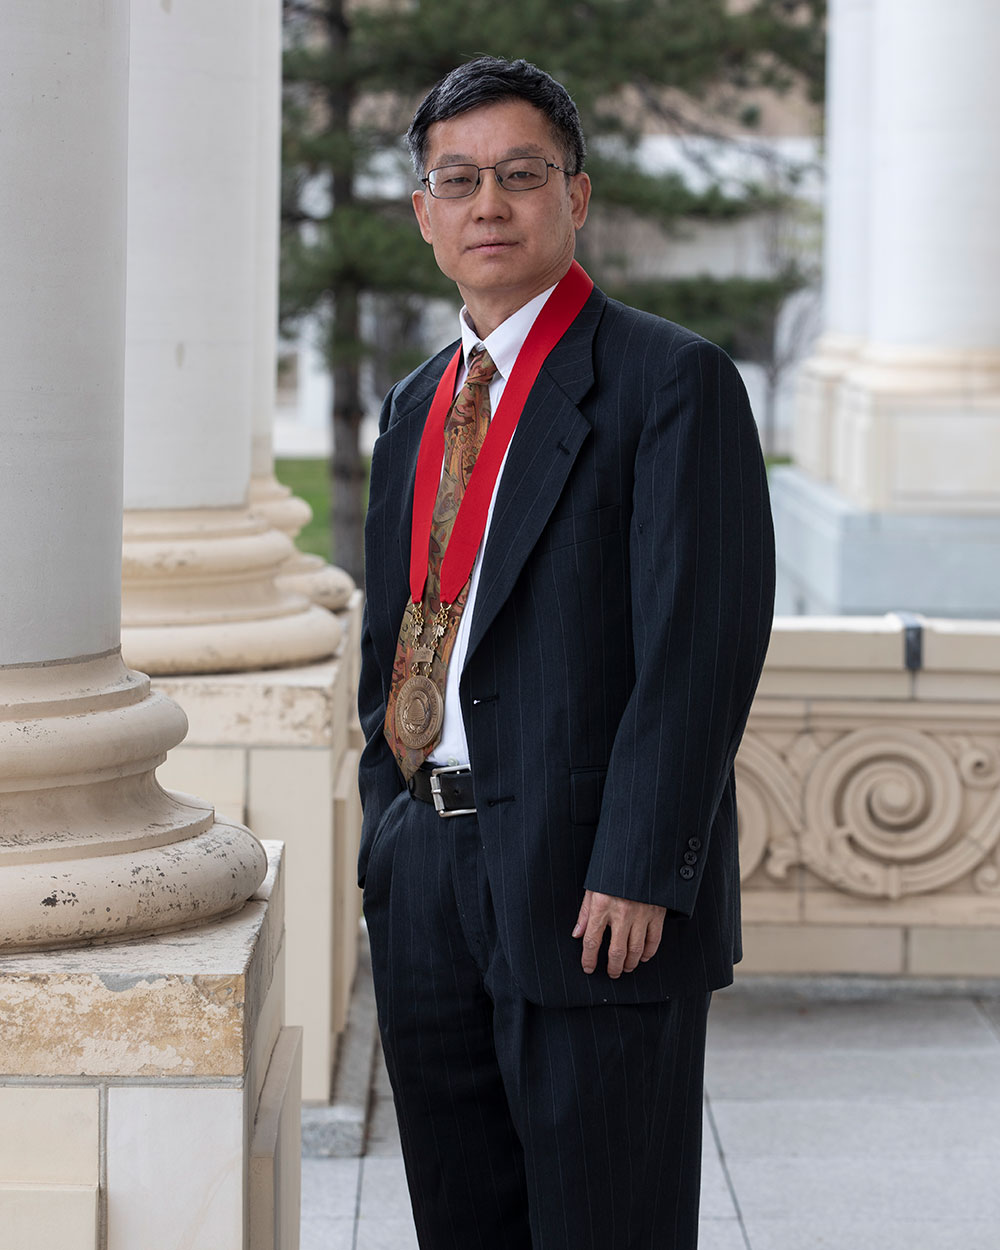 A man stands for a headshot under grecian style columns, wearing a black suit, a white shirt, glasses, and a brass medal attached to a red cloth that he's wearing around his neck.